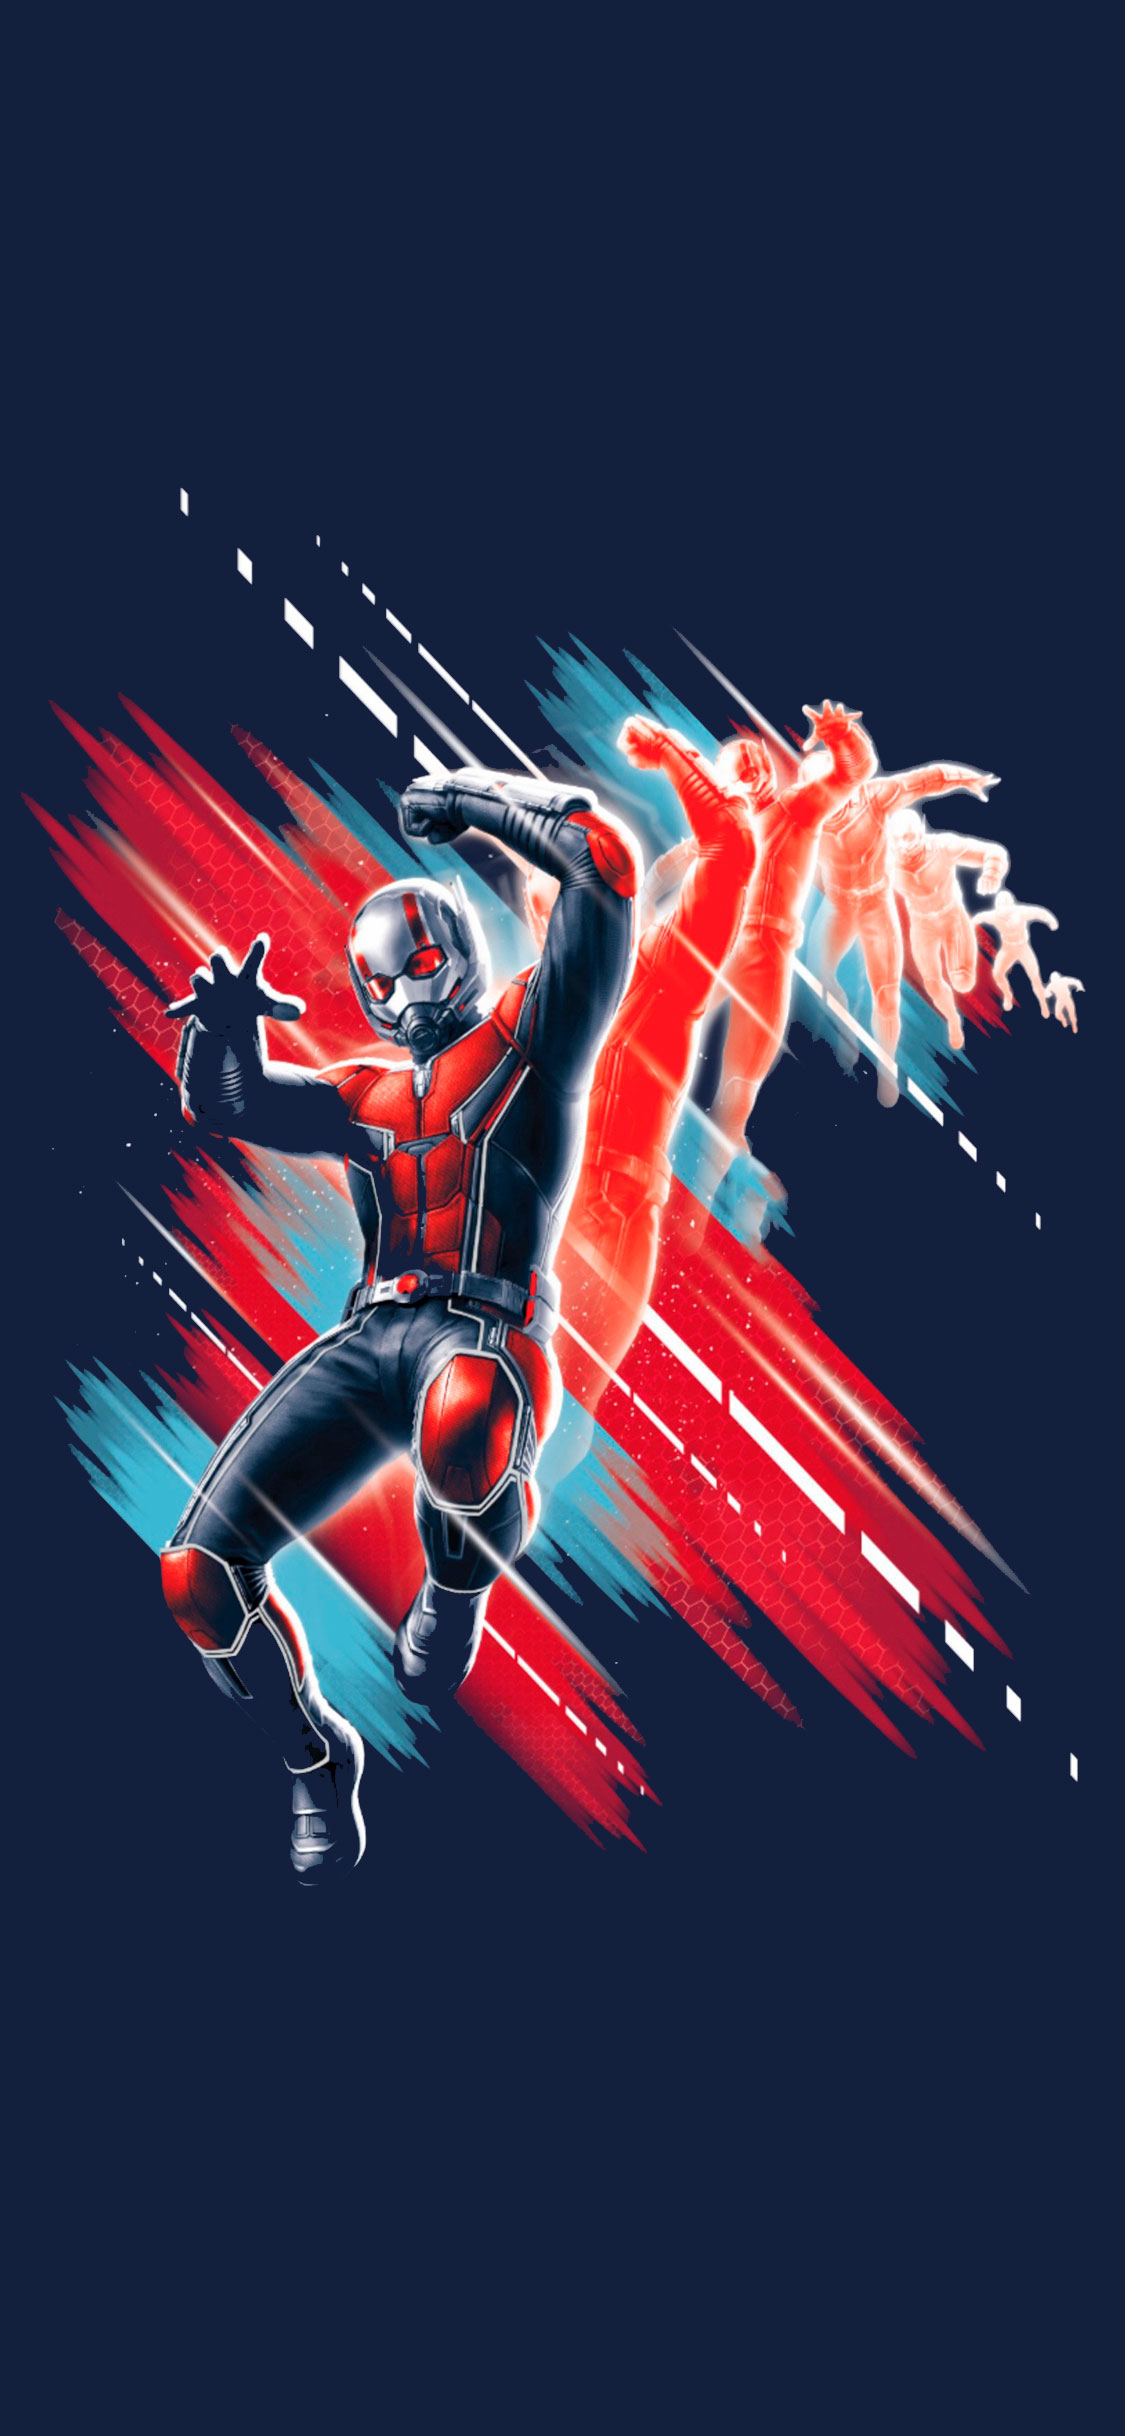 iPhone wallpaper ant man Fonds d'écran iPhone du 15/06/2018